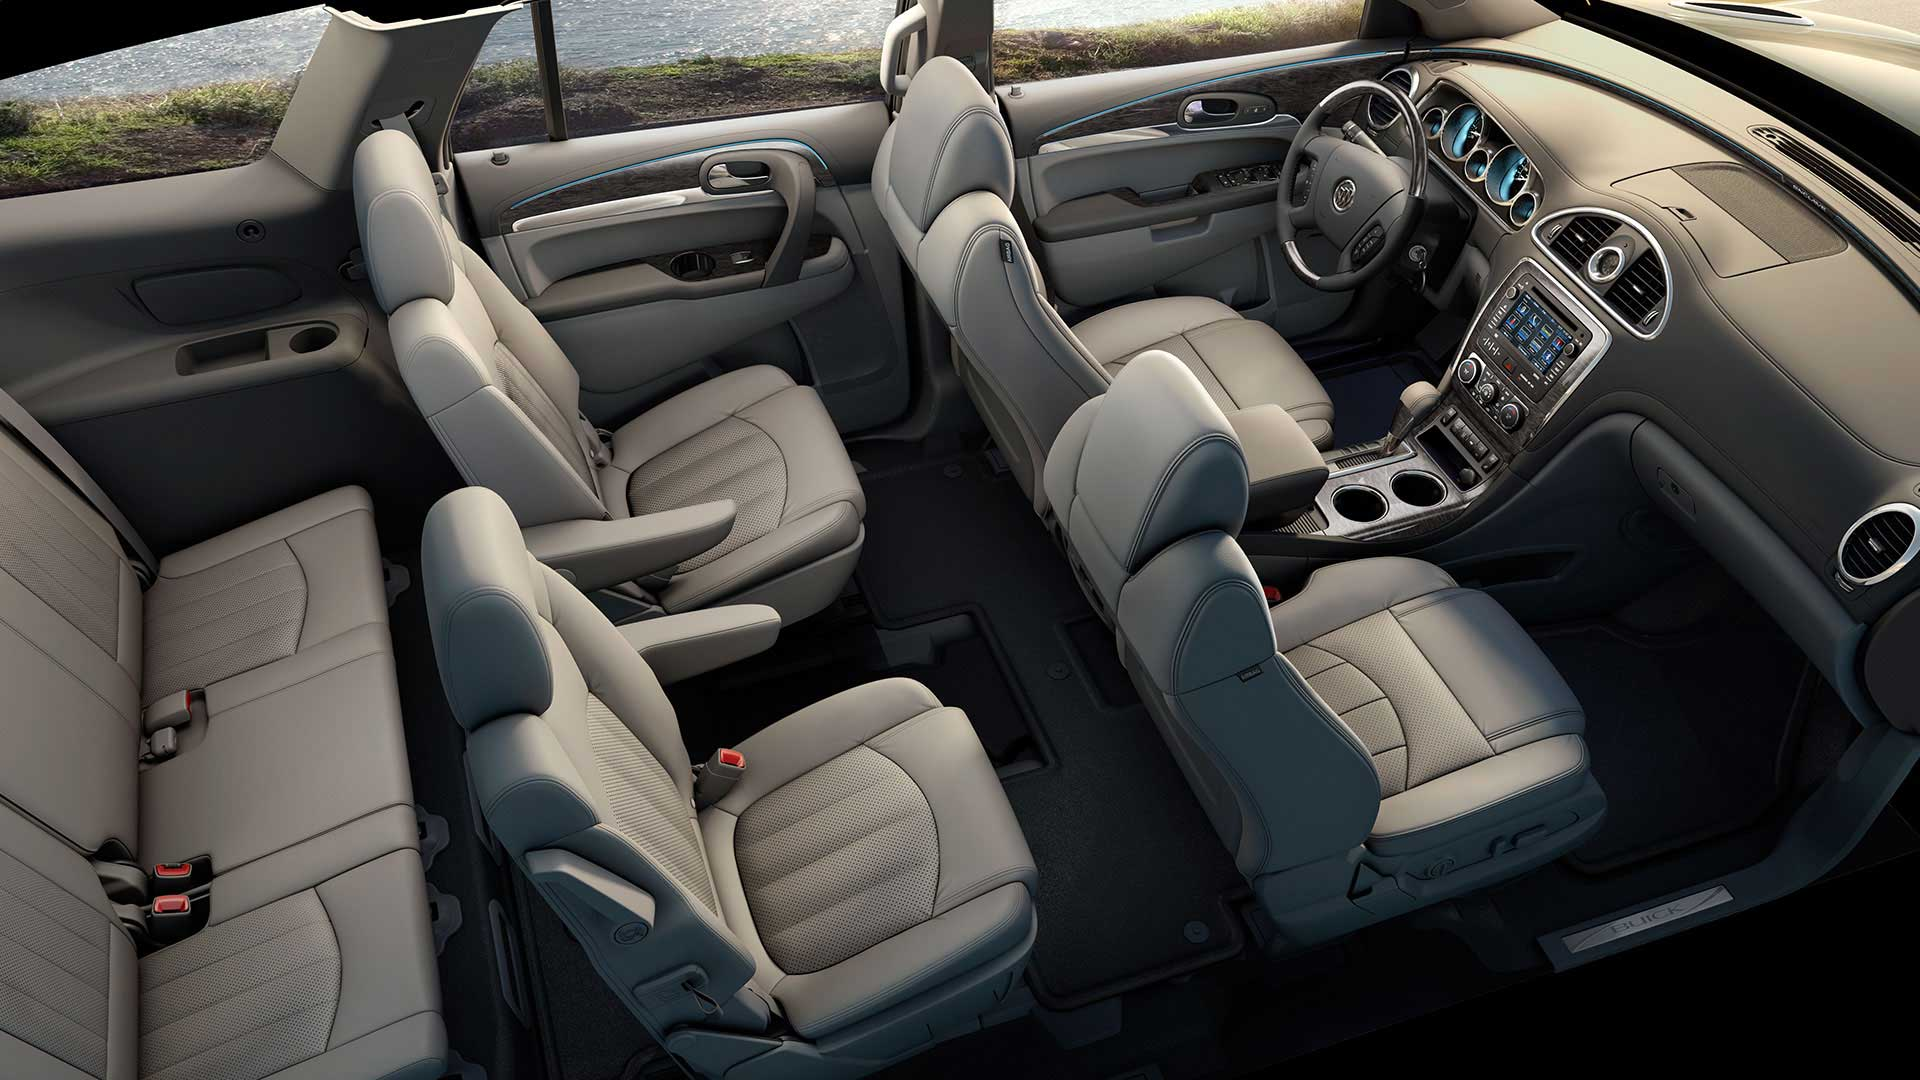 az compact affordable encore suv reviews phoenix essence htm specs buick review